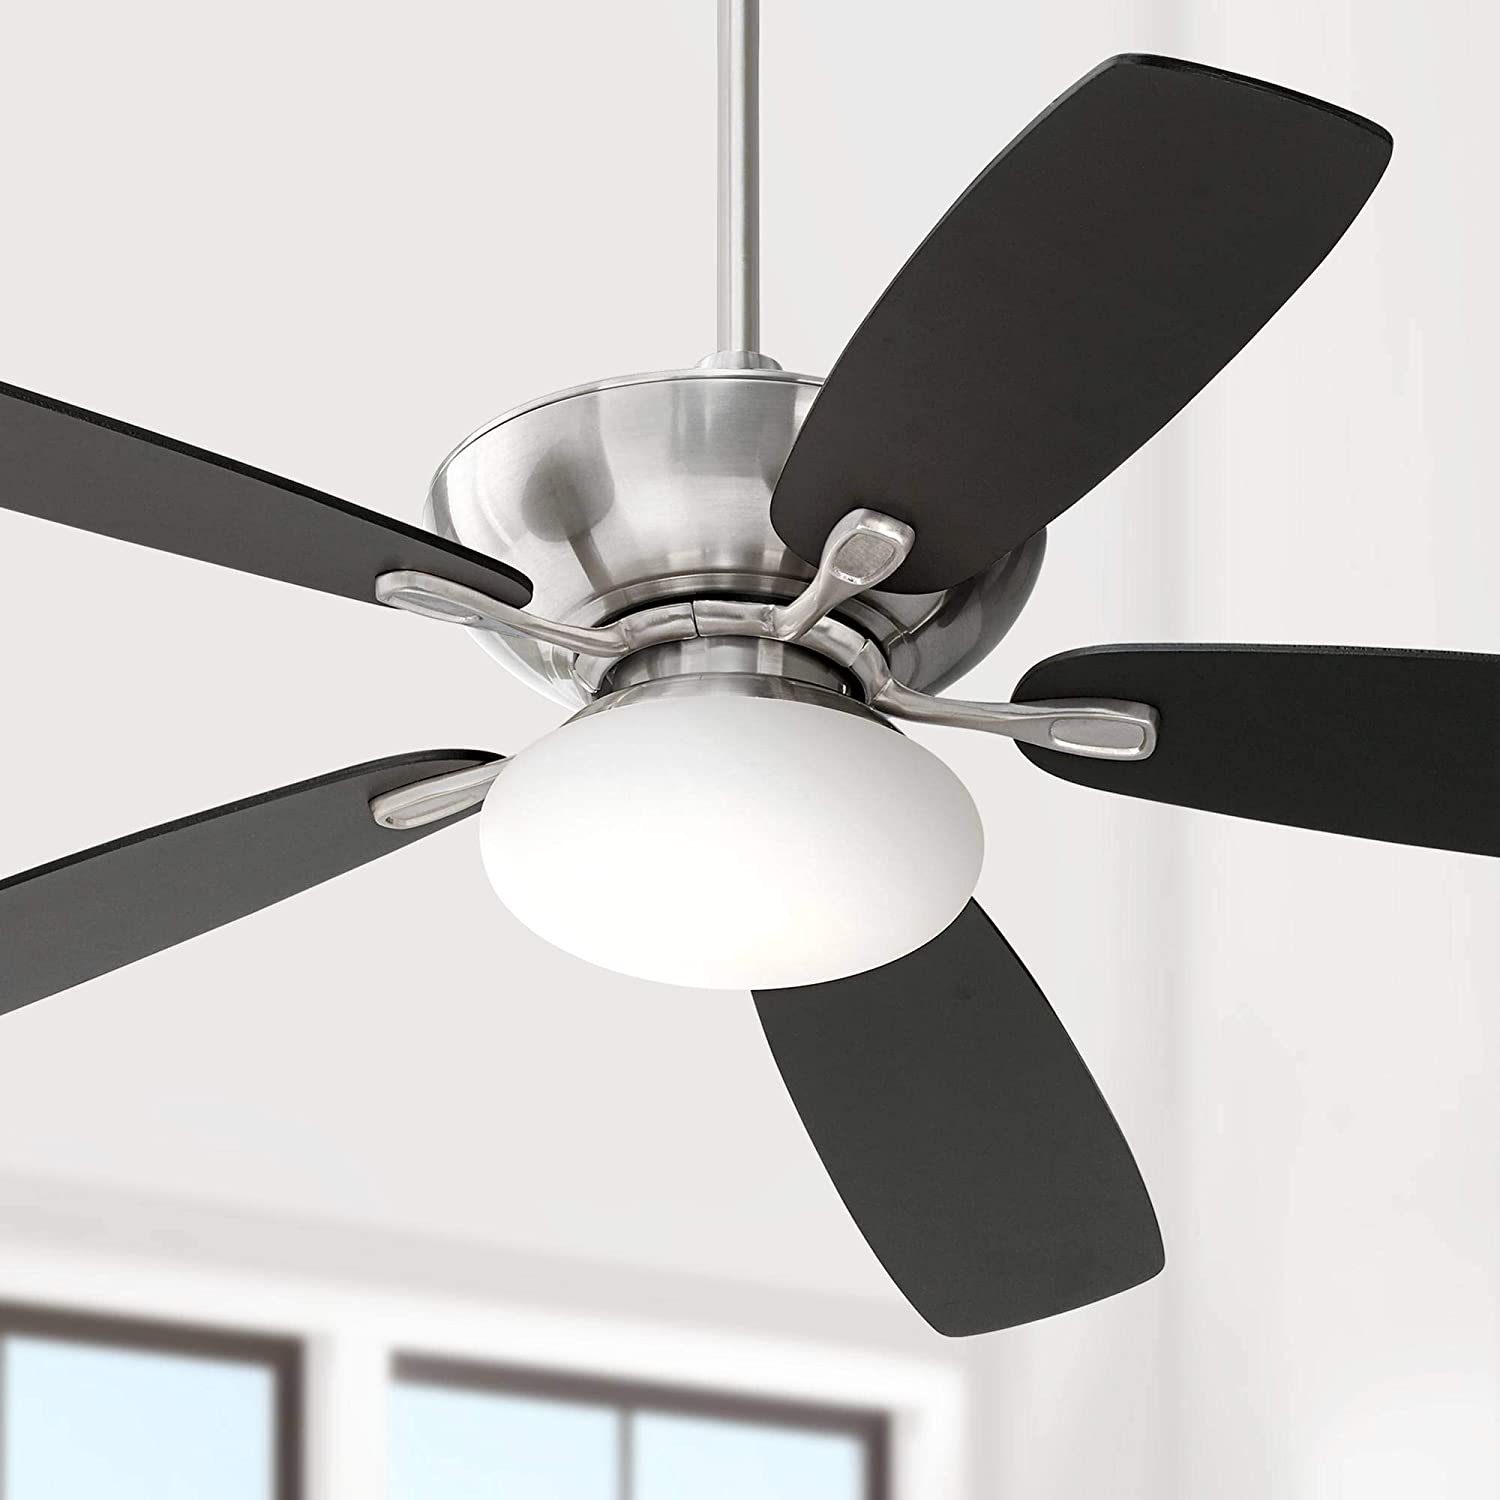 52 Flex Modern Ceiling Fan with Light LED Brushed Nickel Reversible Silver Black Blades Opal Etched Glass for Living Room Kitchen Bedroom Family Dining – Casa Vieja